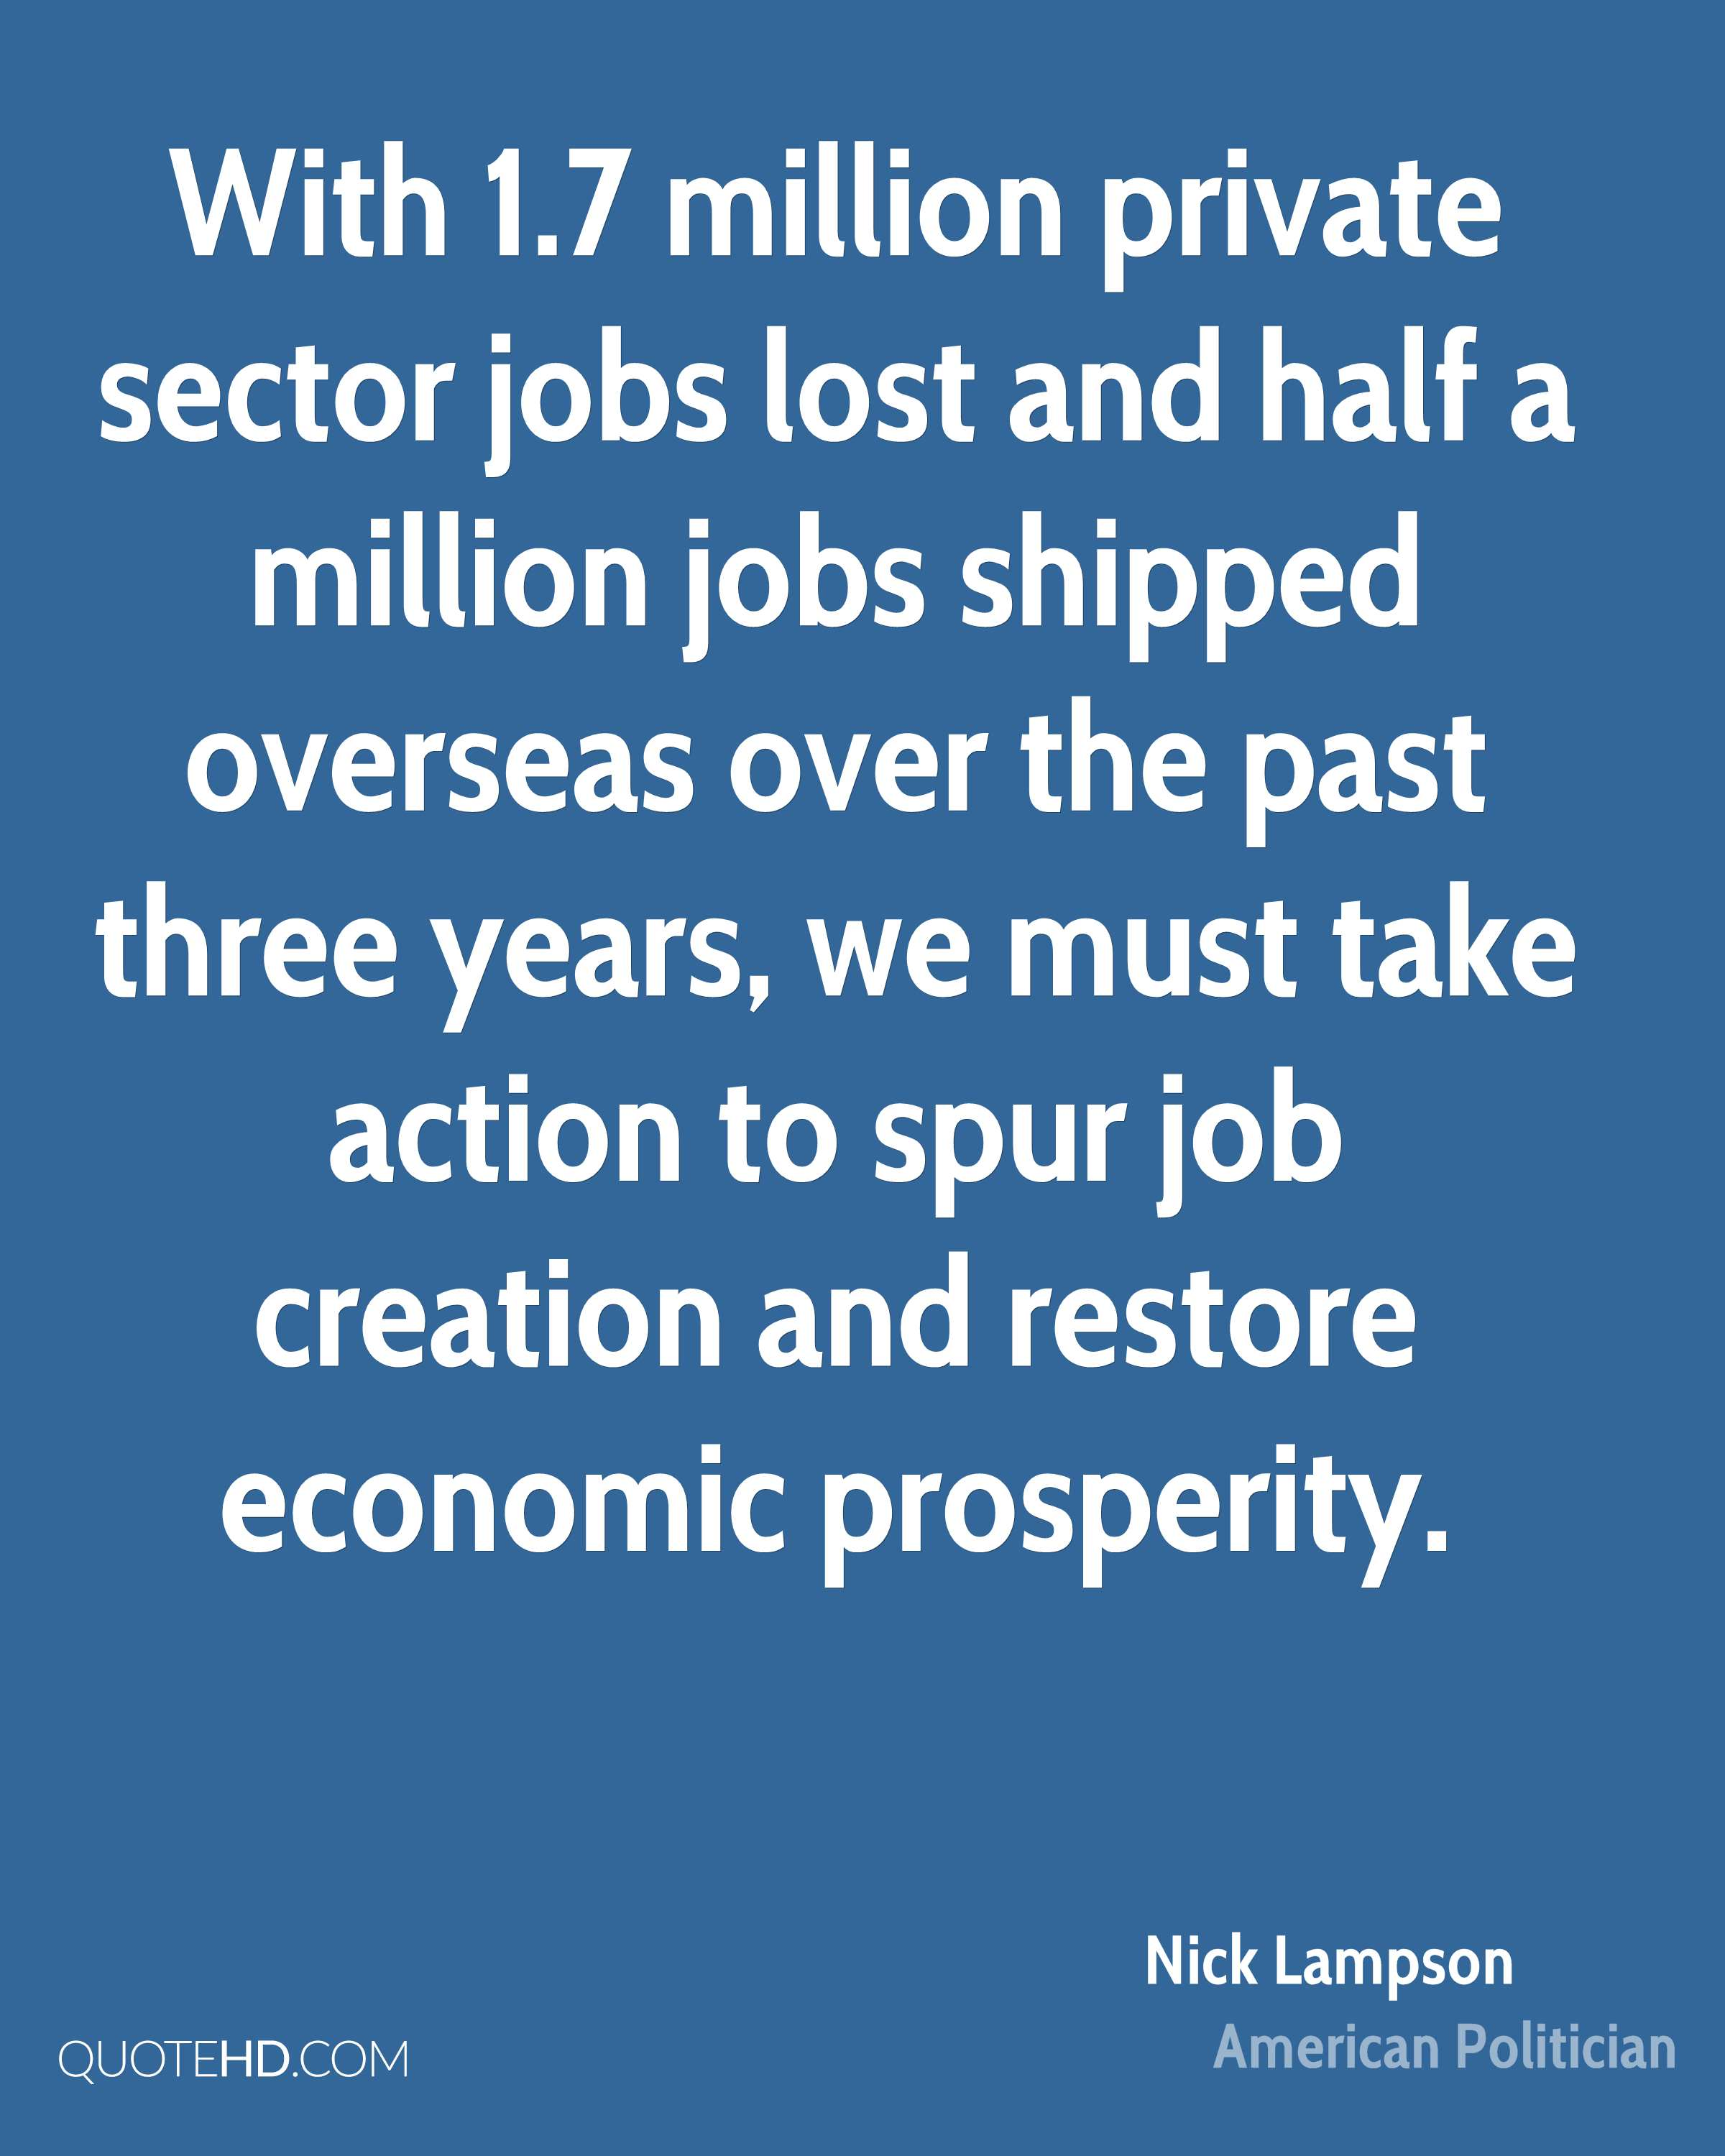 With 1.7 million private sector jobs lost and half a million jobs shipped overseas over the past three years, we must take action to spur job creation and restore economic prosperity.